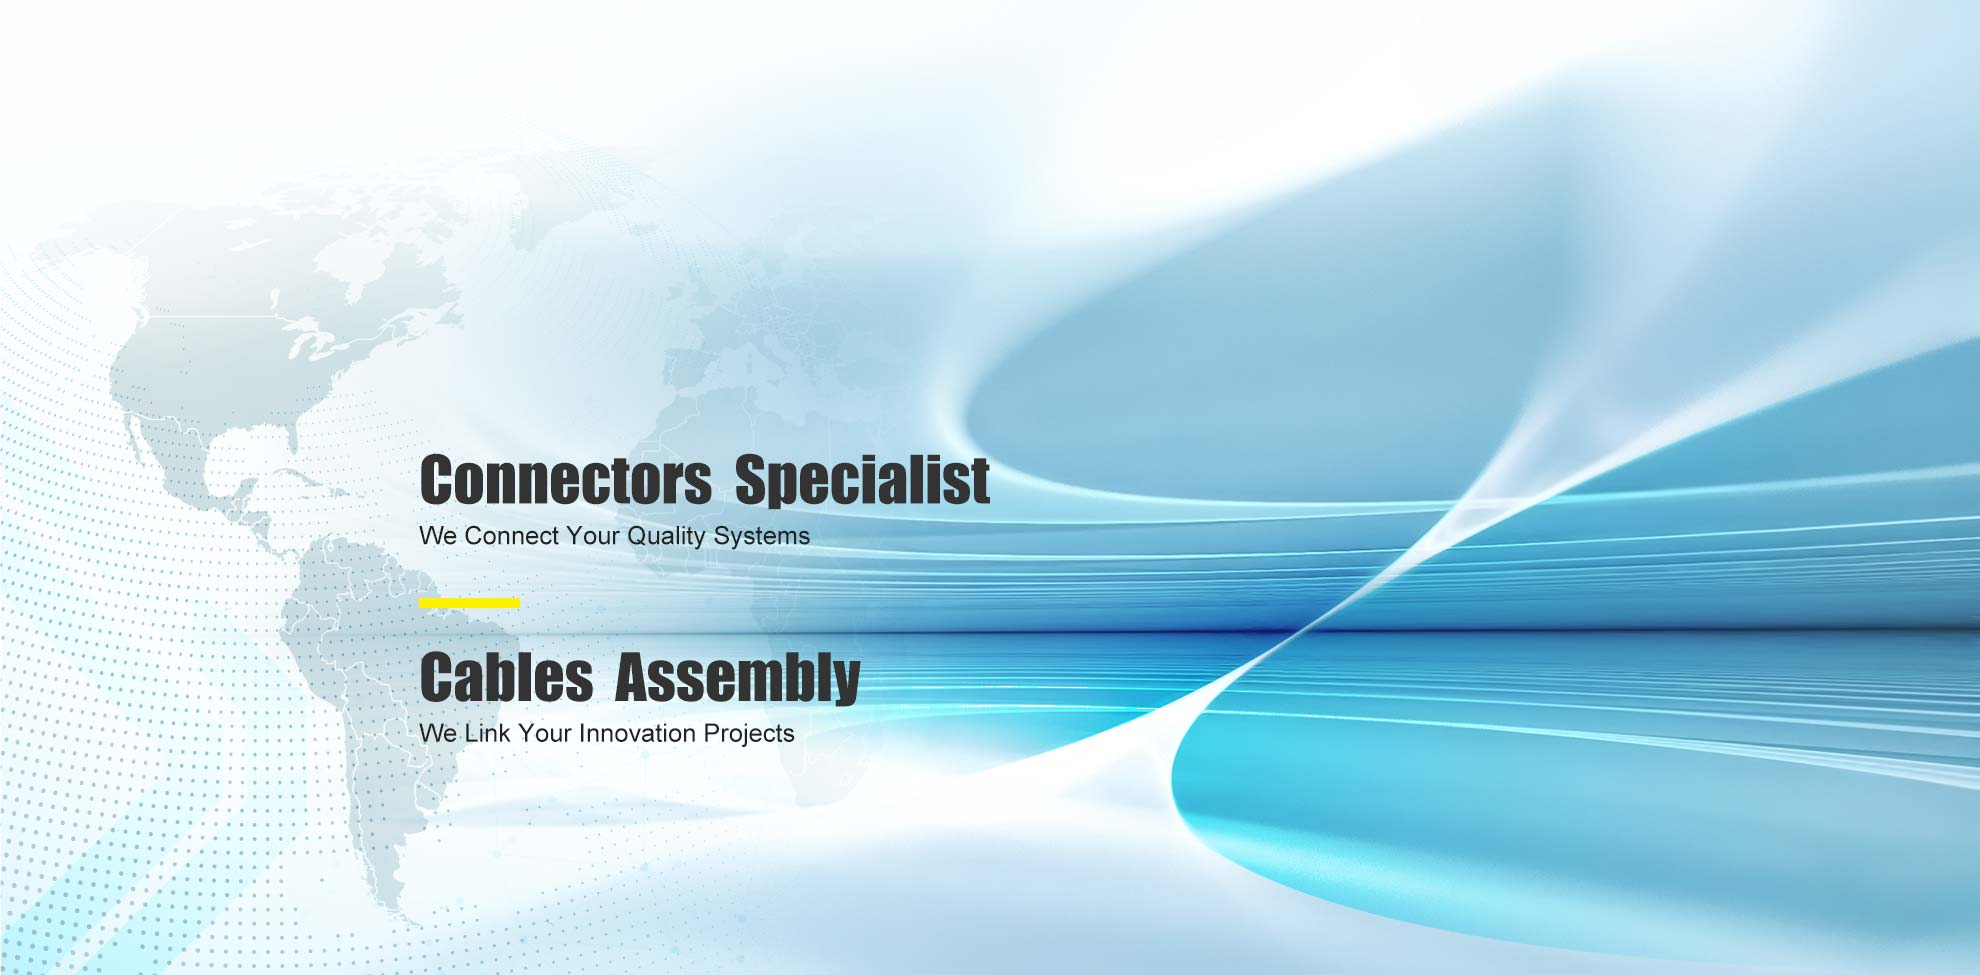 connectors specialist we connect your quality systems